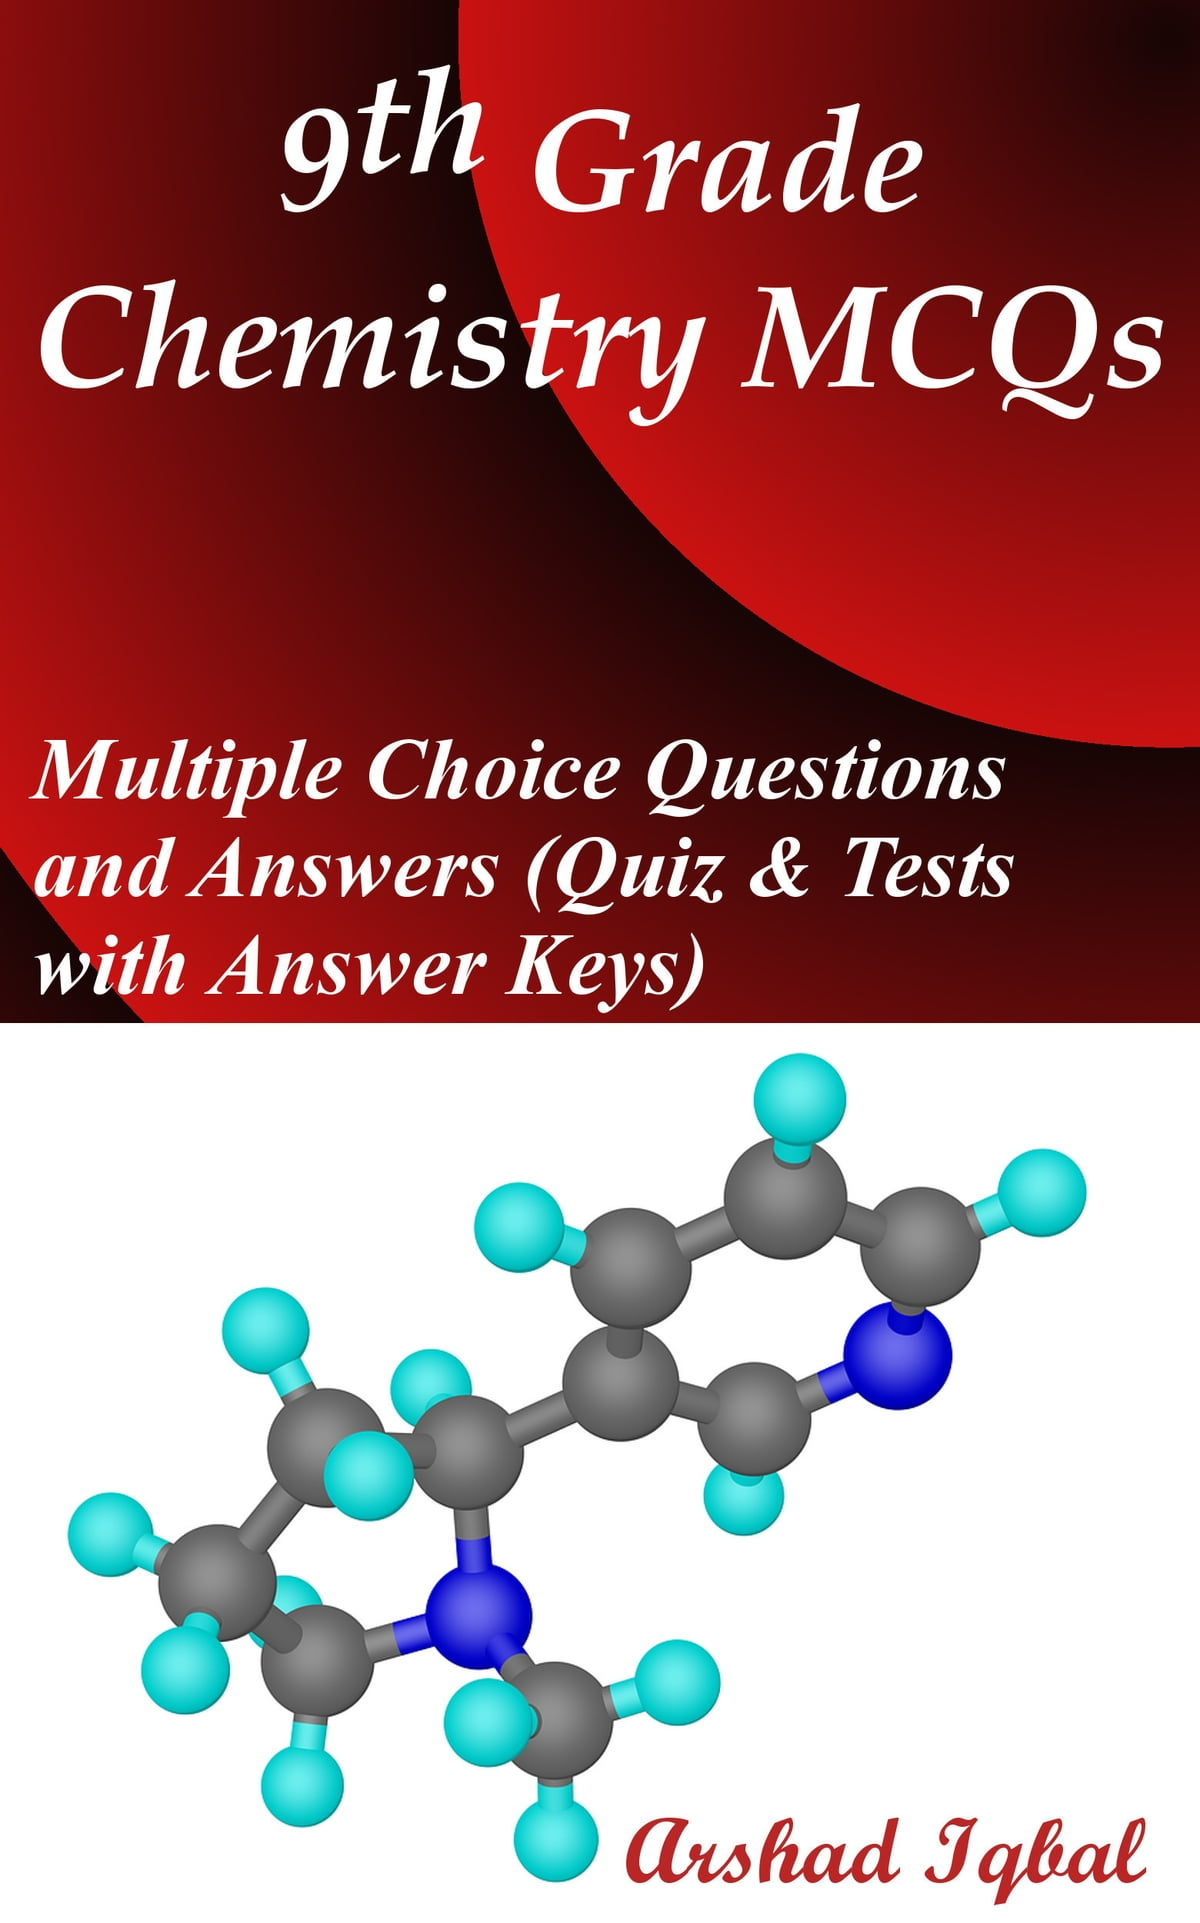 9th Grade Chemistry MCQs: Multiple Choice Questions and Answers (Quiz &  Tests with Answer Keys) eBook by Arshad Iqbal - 9781311466914 | Rakuten Kobo